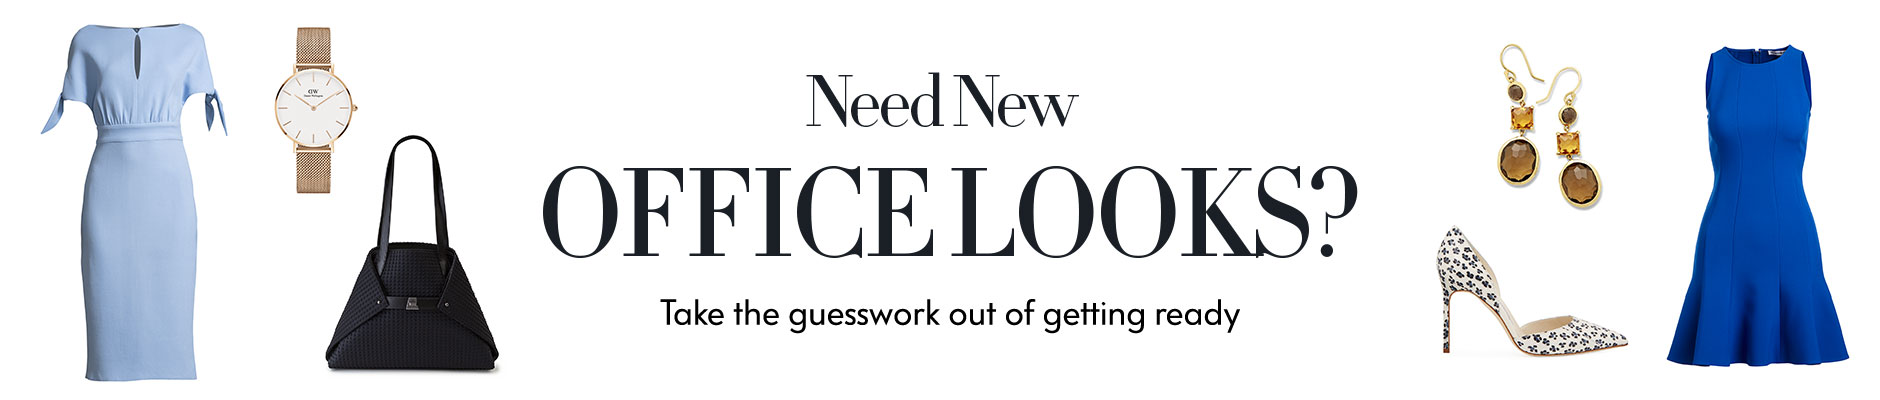 New New Office Looks? Take the guesswork out of getting ready